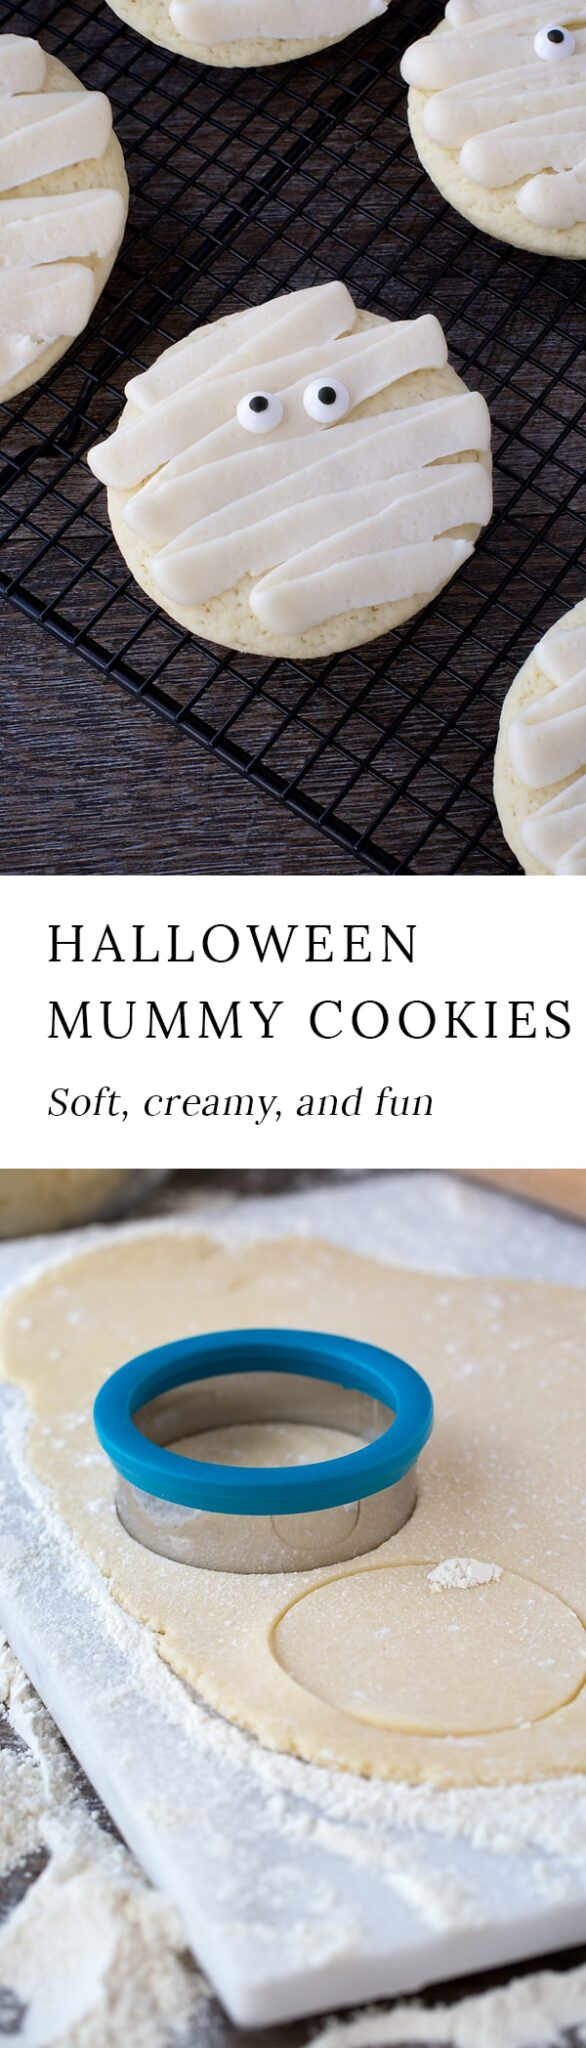 These delicious mummy cookies are sure to add plenty of spooky fun to your child's lunchbox! They are soft, creamy, and will delight children of all ages!